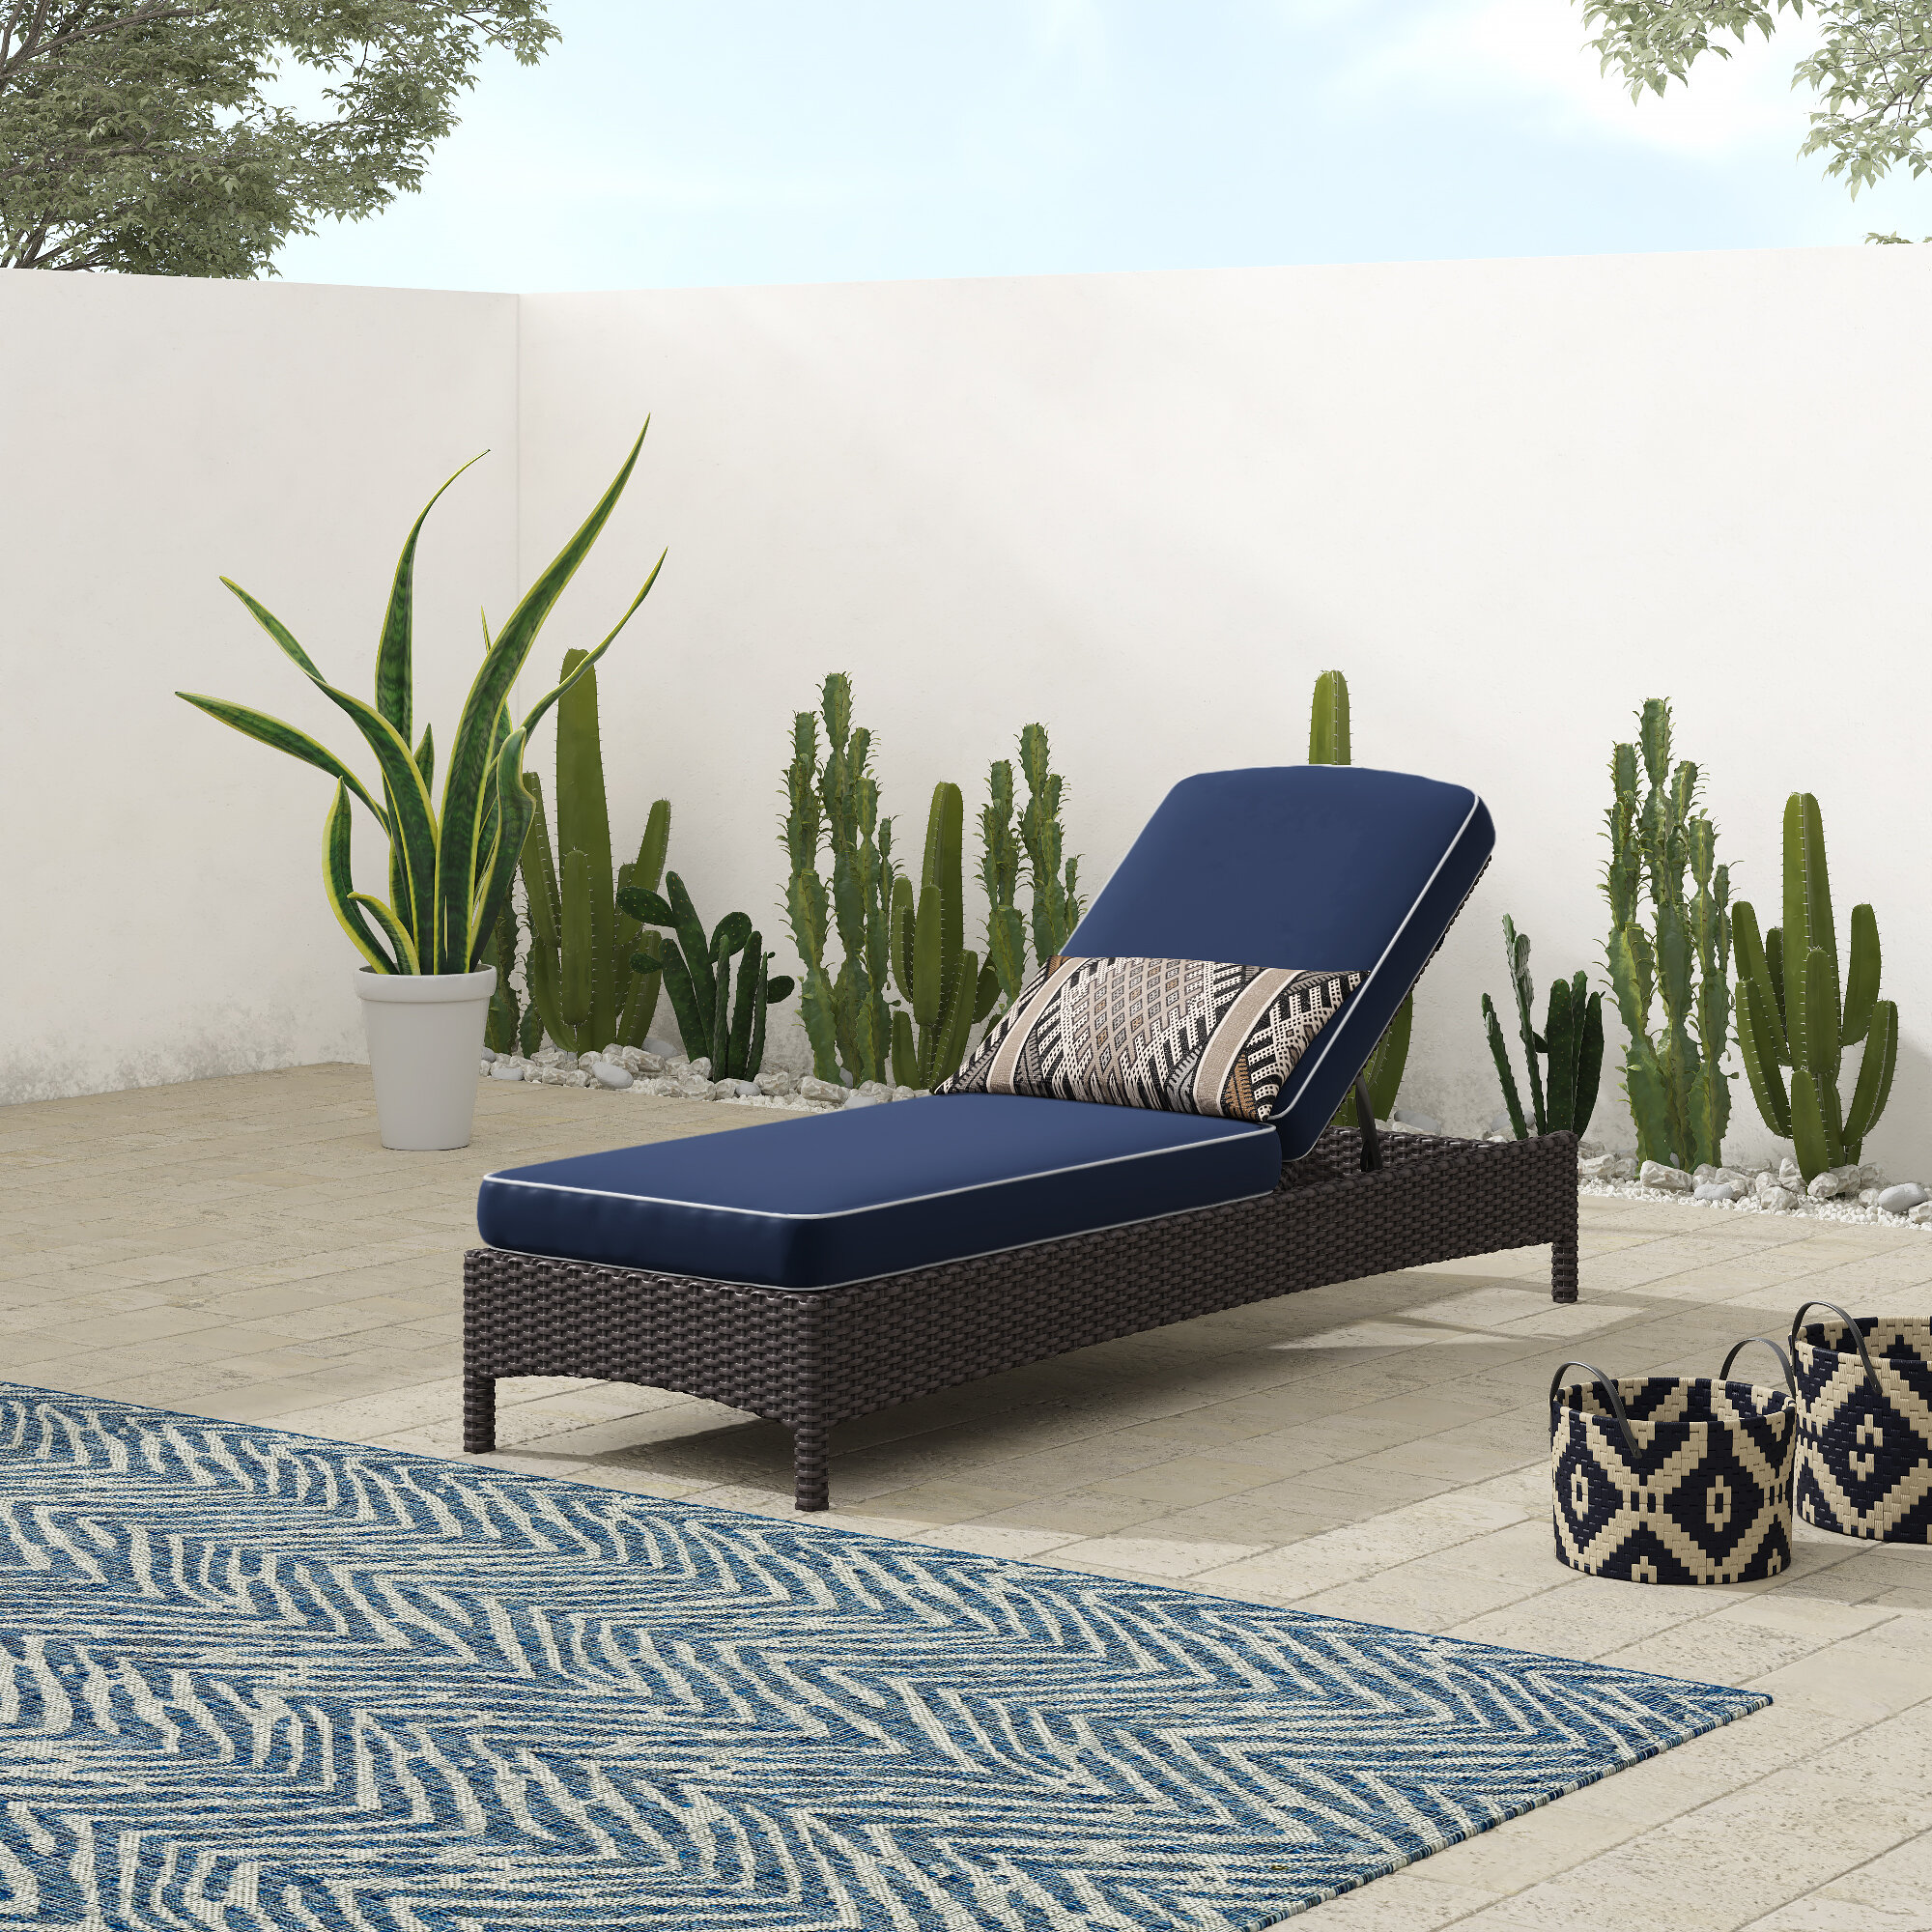 Outdoor Chaise Lounge.Crawfordsville Outdoor Chaise Lounge With Cushion